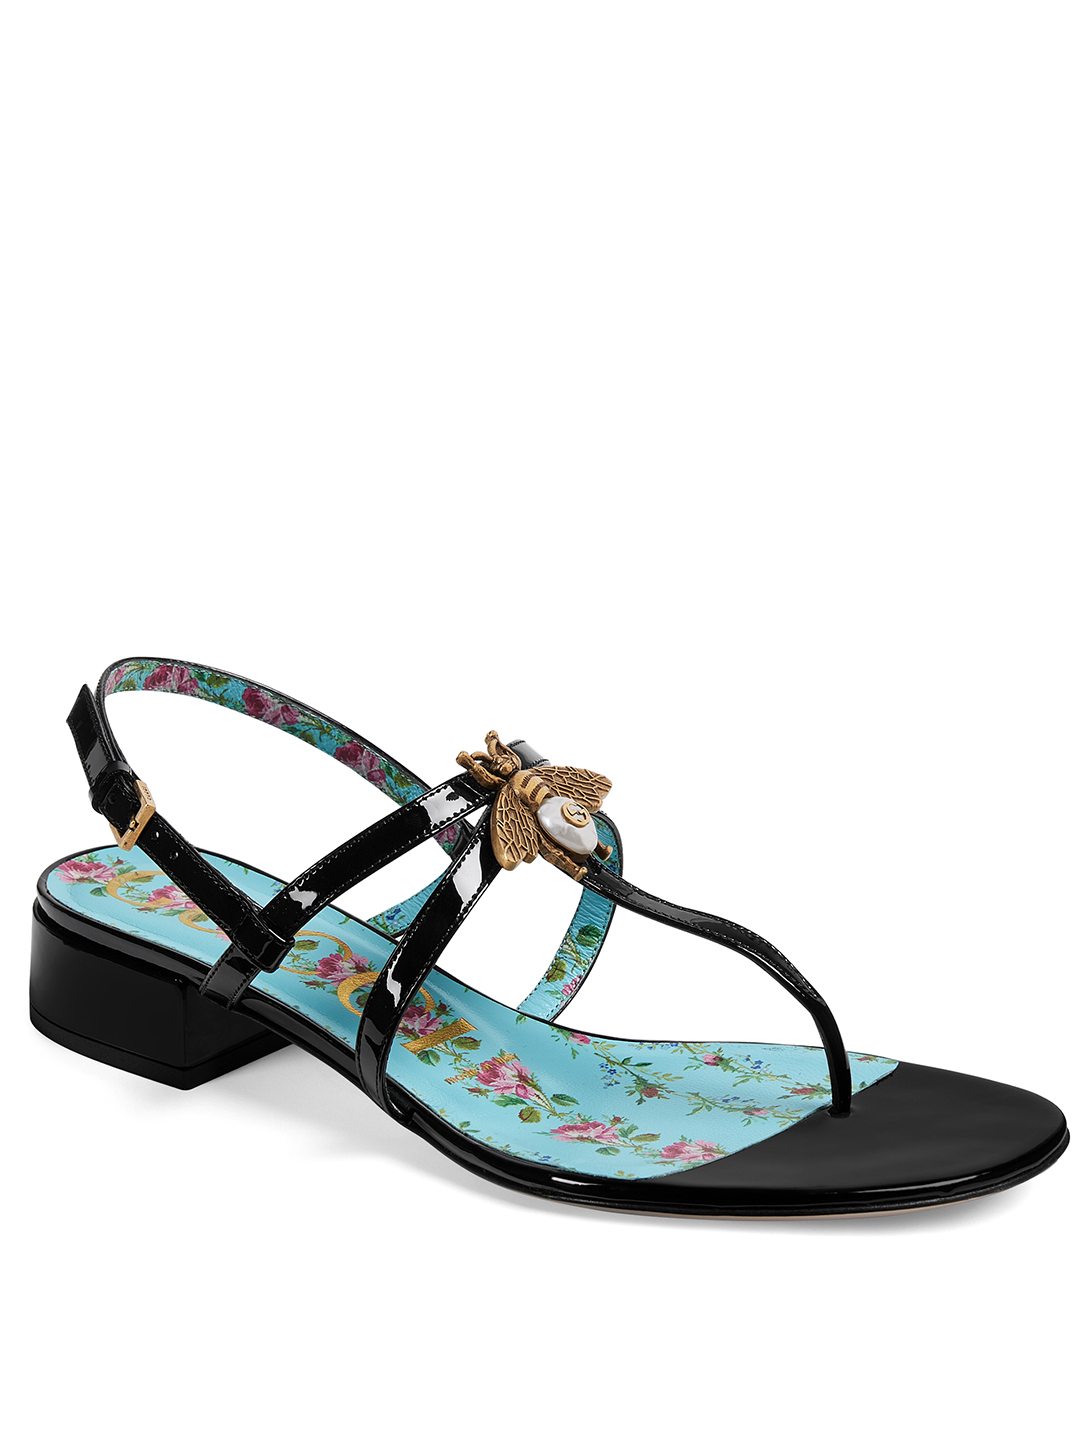 GUCCI Lois Patent Leather Sandals With Bee Detail Designers Black